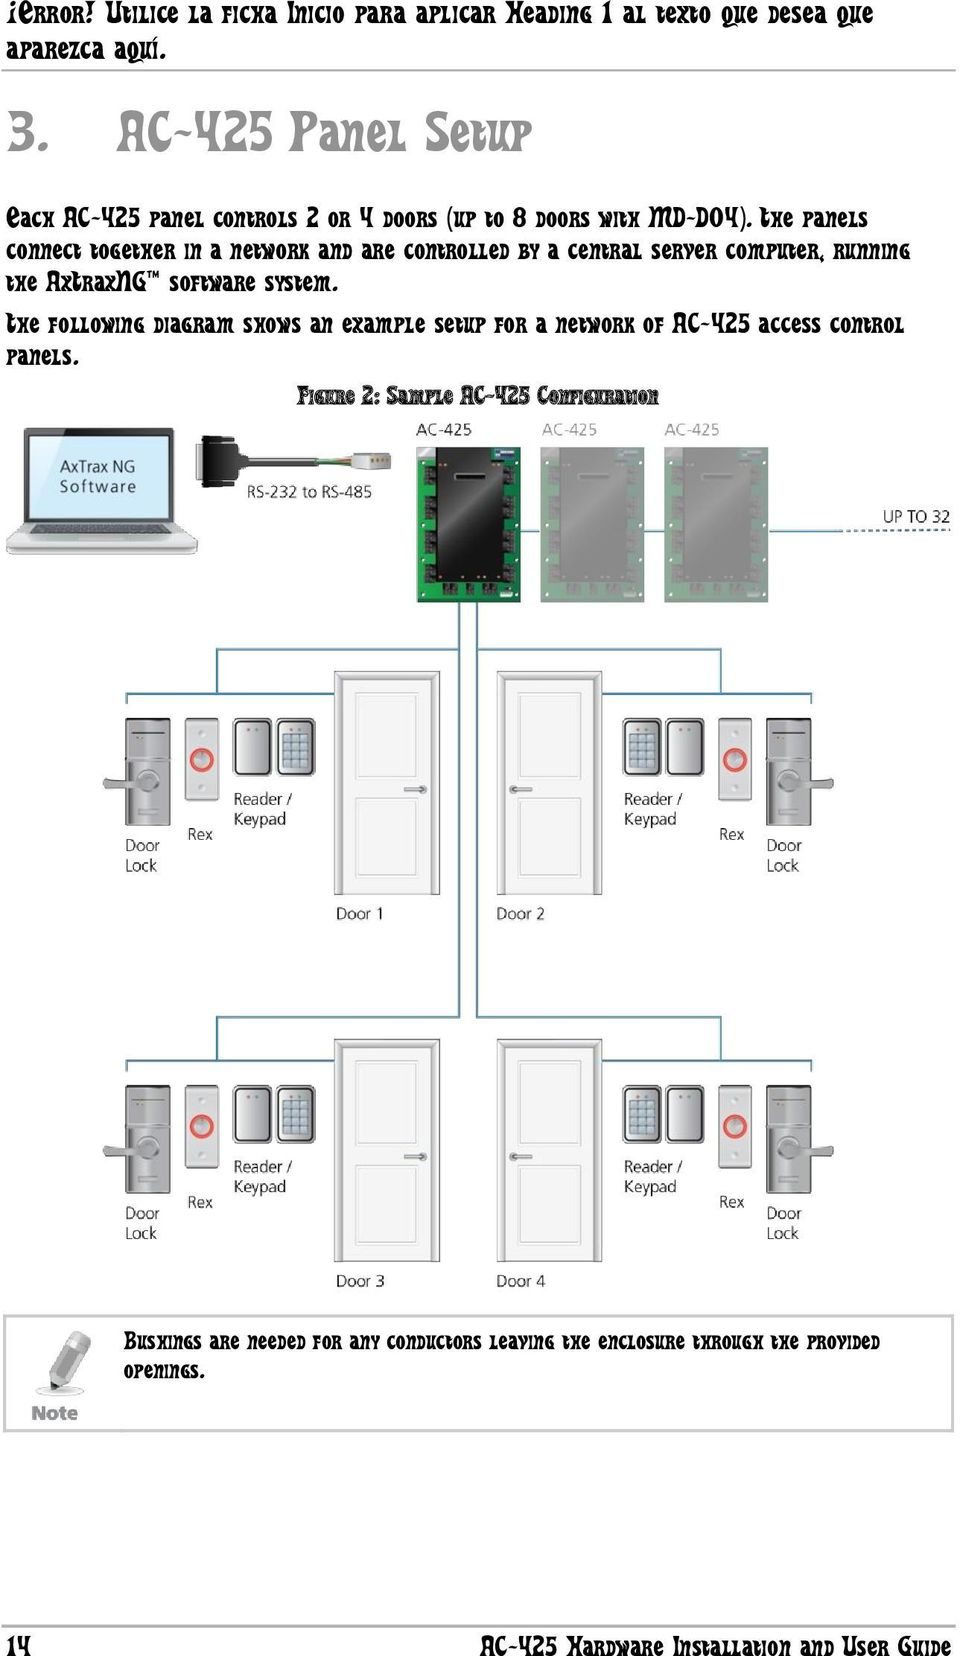 system. The following diagram shows an example setup for a network of AC-425 access control panels.